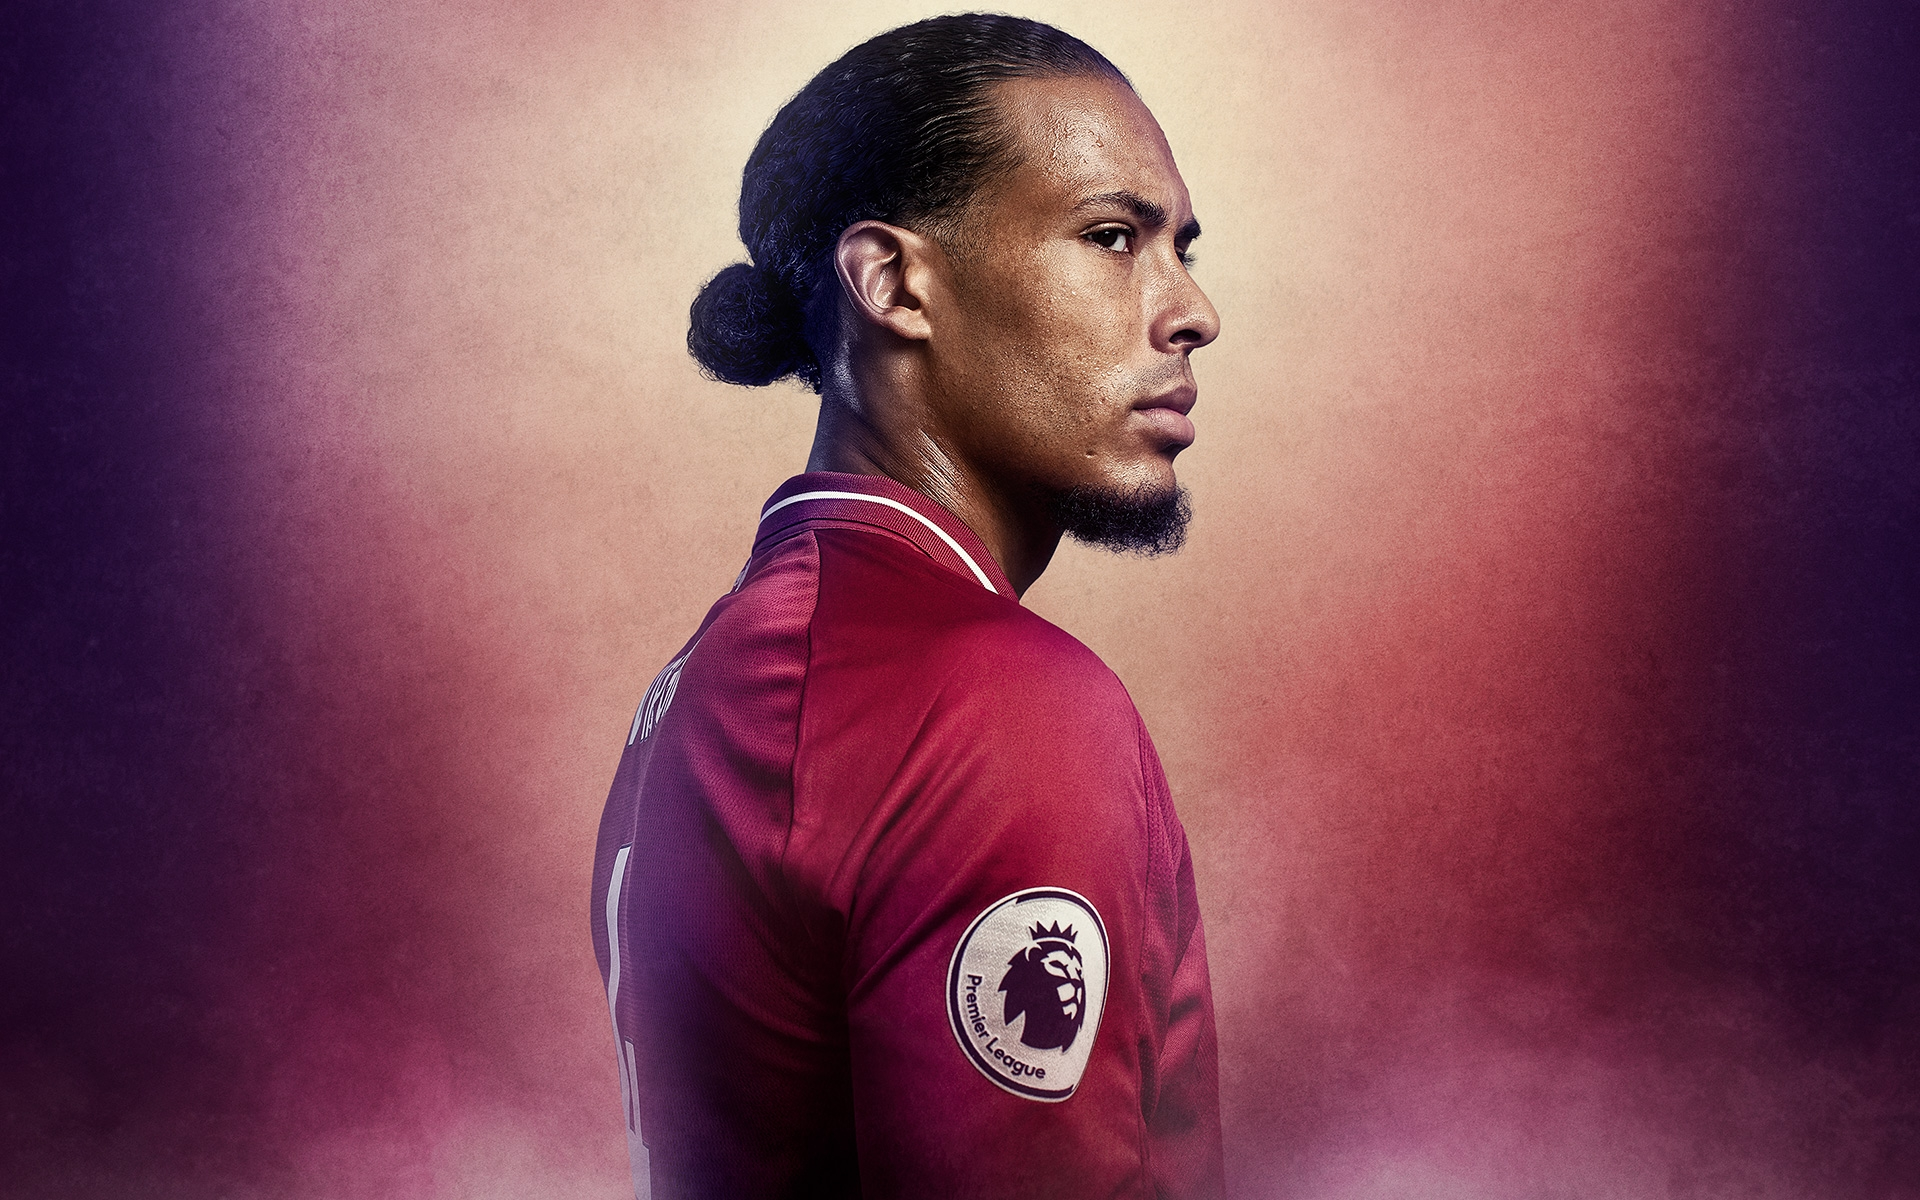 Liverpool FC: Virgil Van Dijk produced by Avenue Sixty7